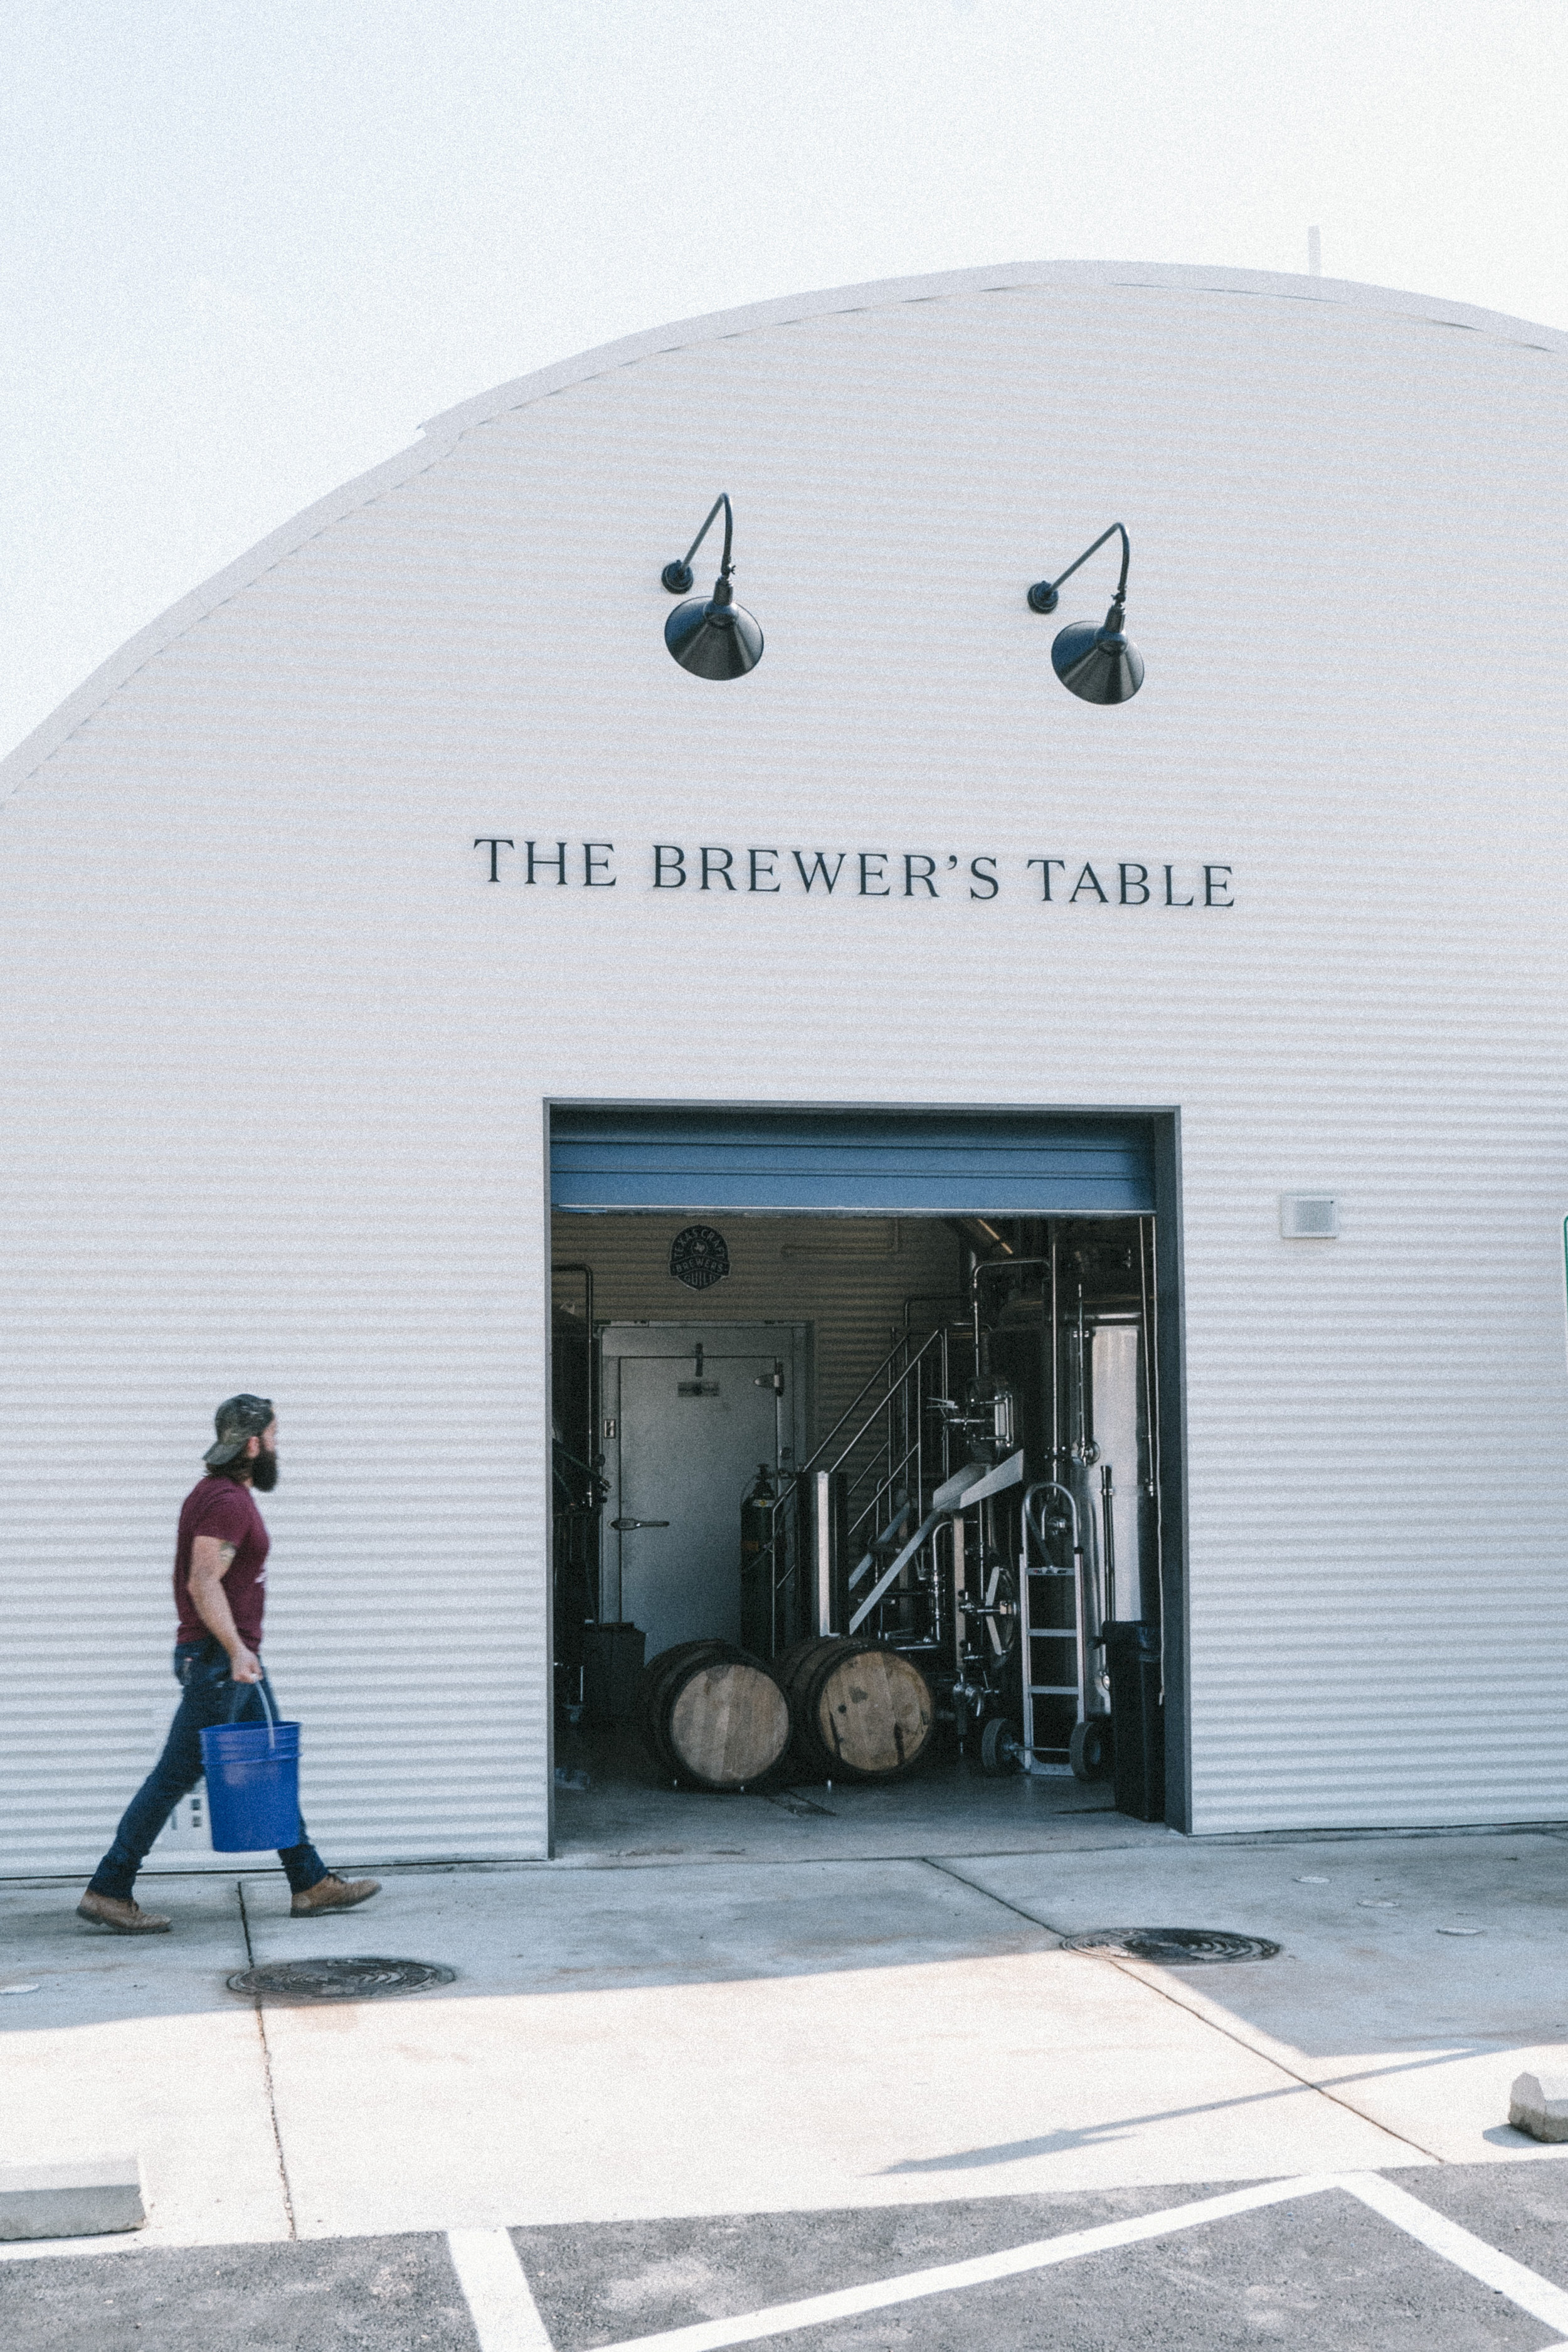 The Brewer's Table. Photo by Logan Crable